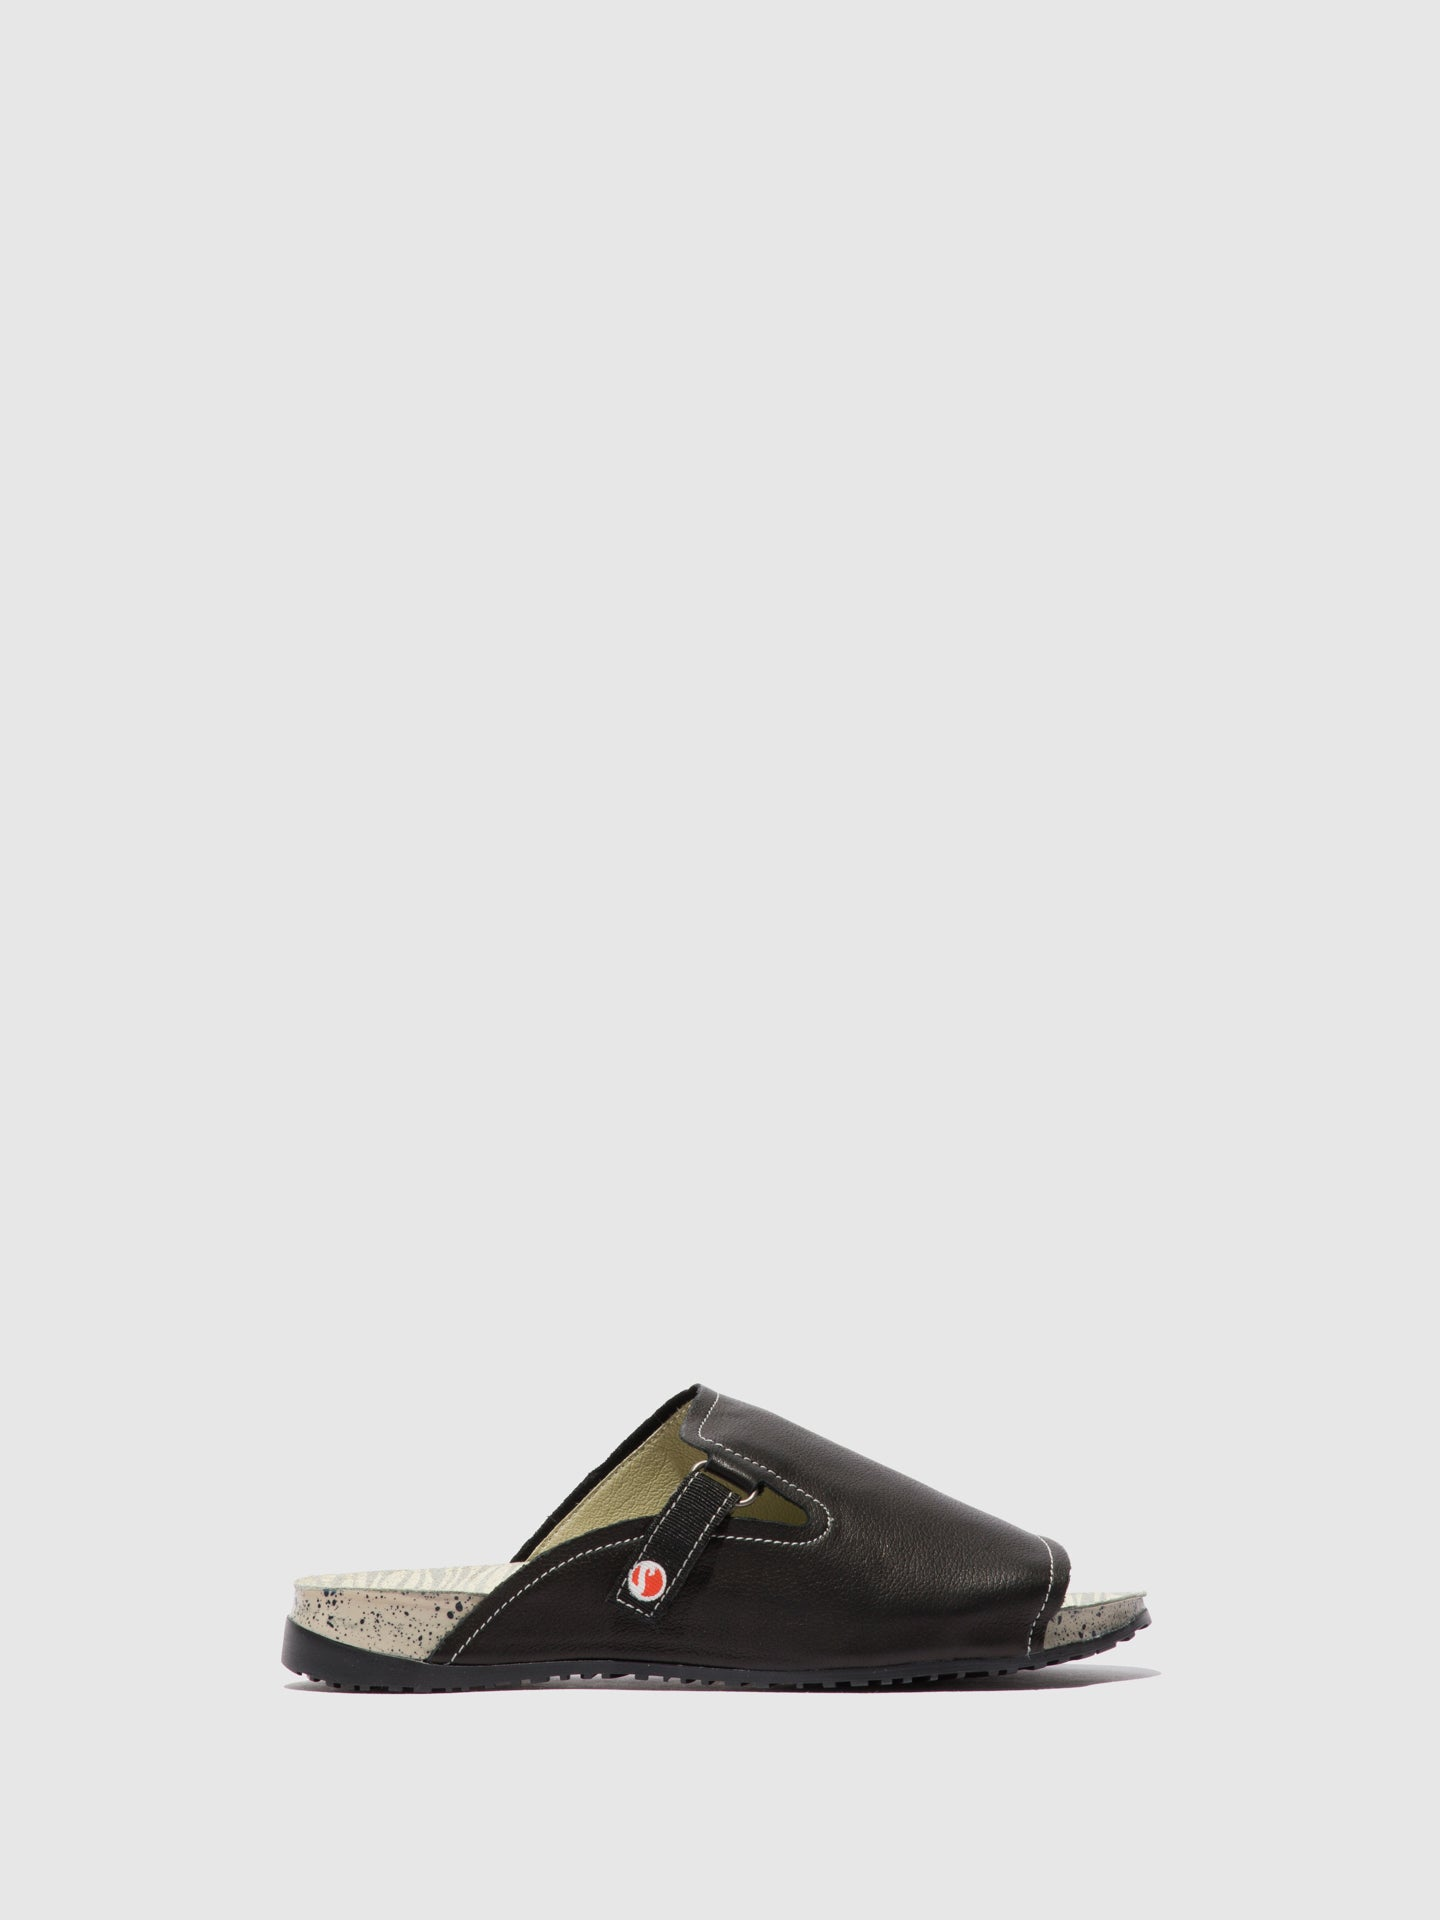 Softinos Open Toe Mules KARI590SOF Black